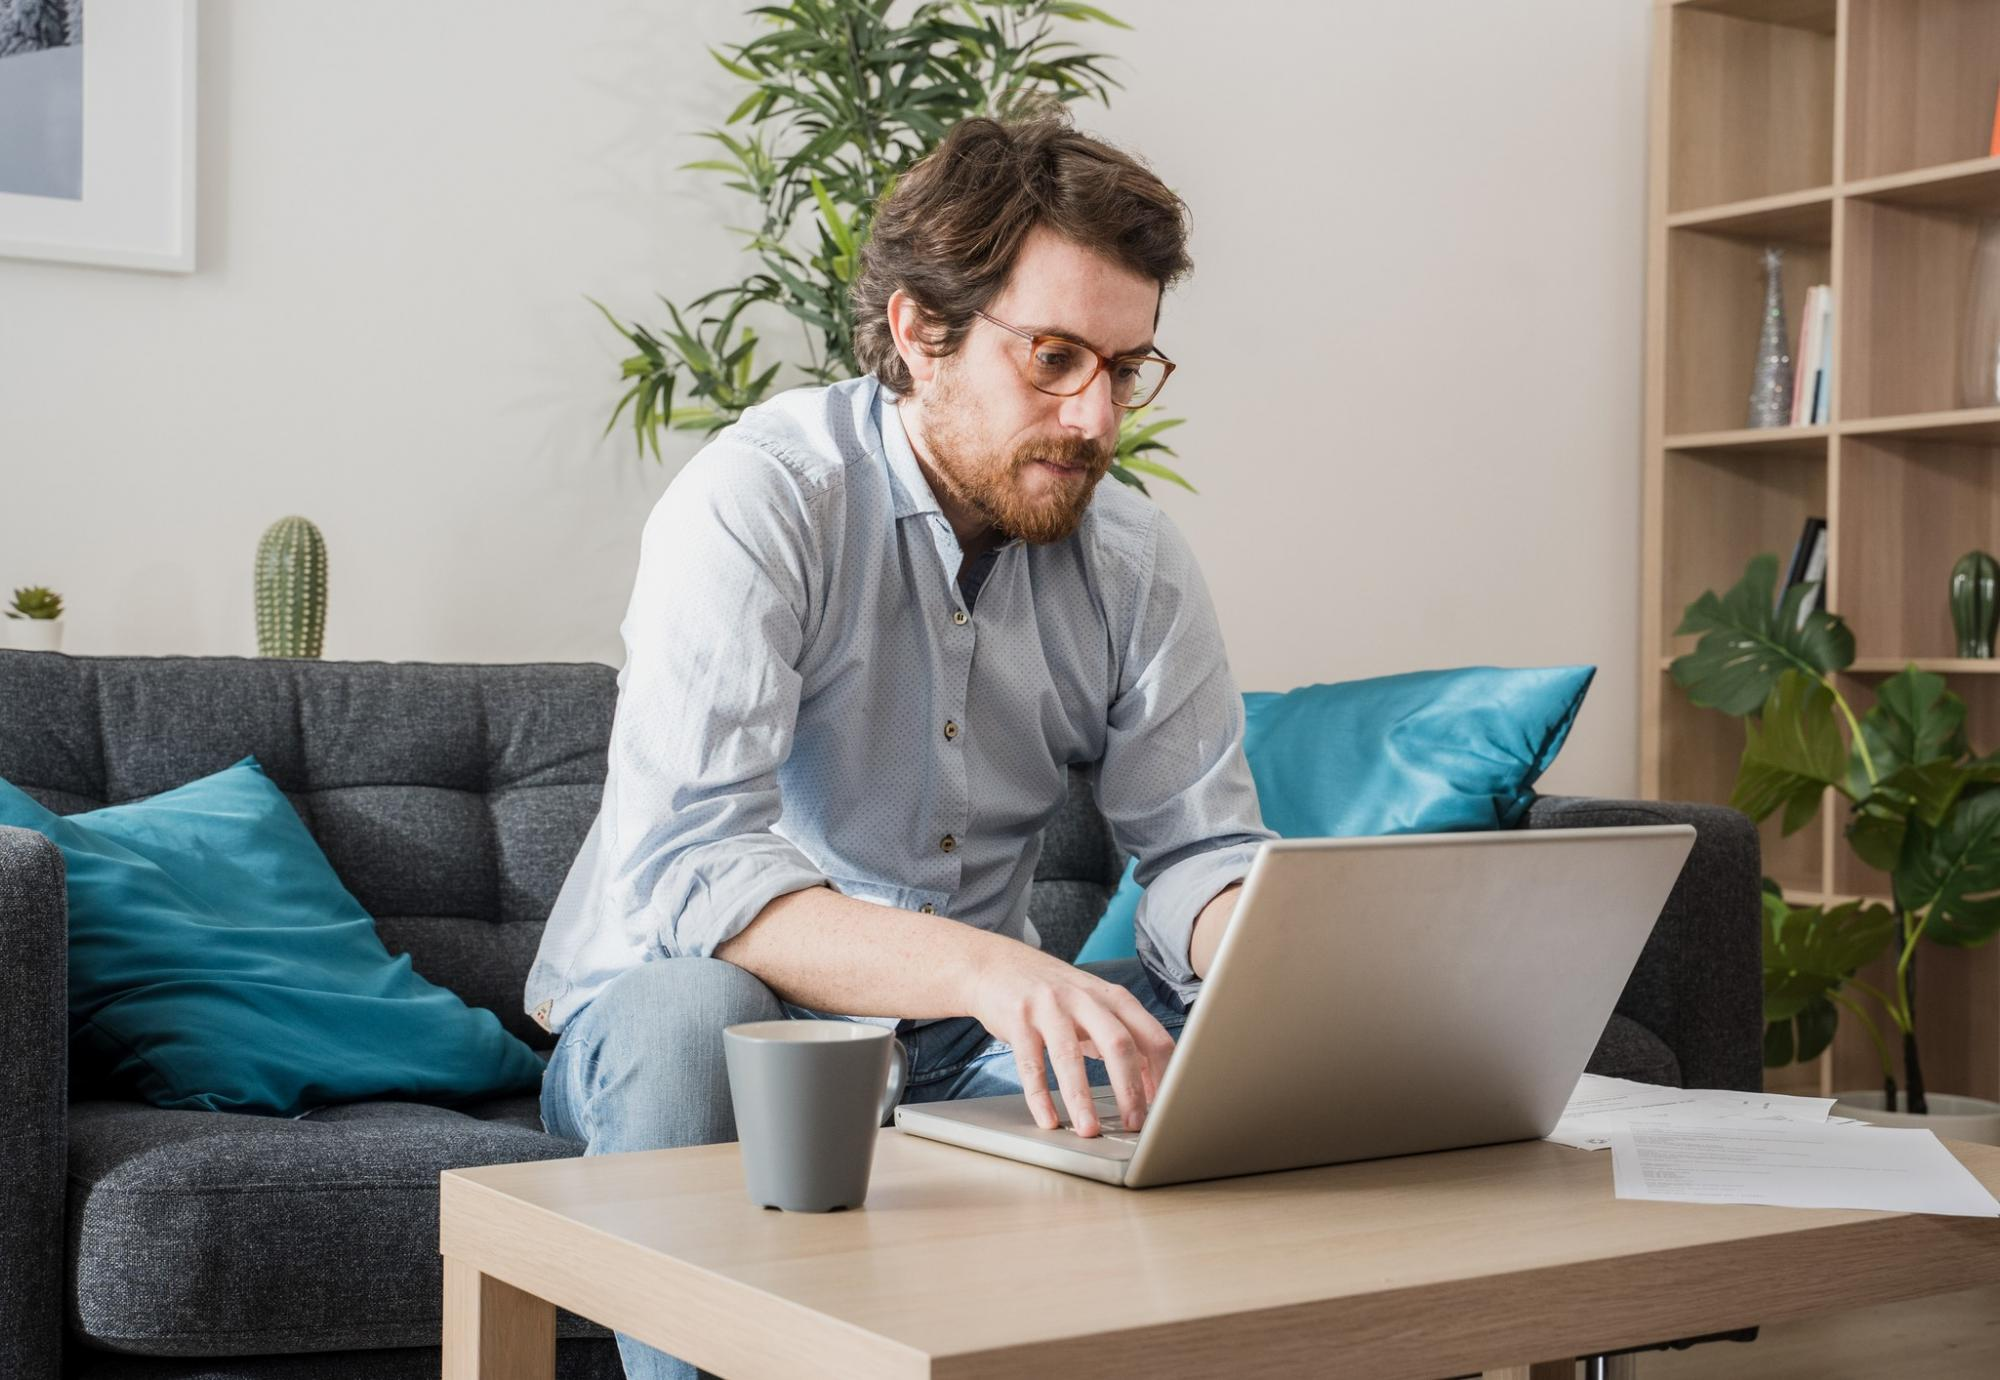 Man sits at computer, working from home.